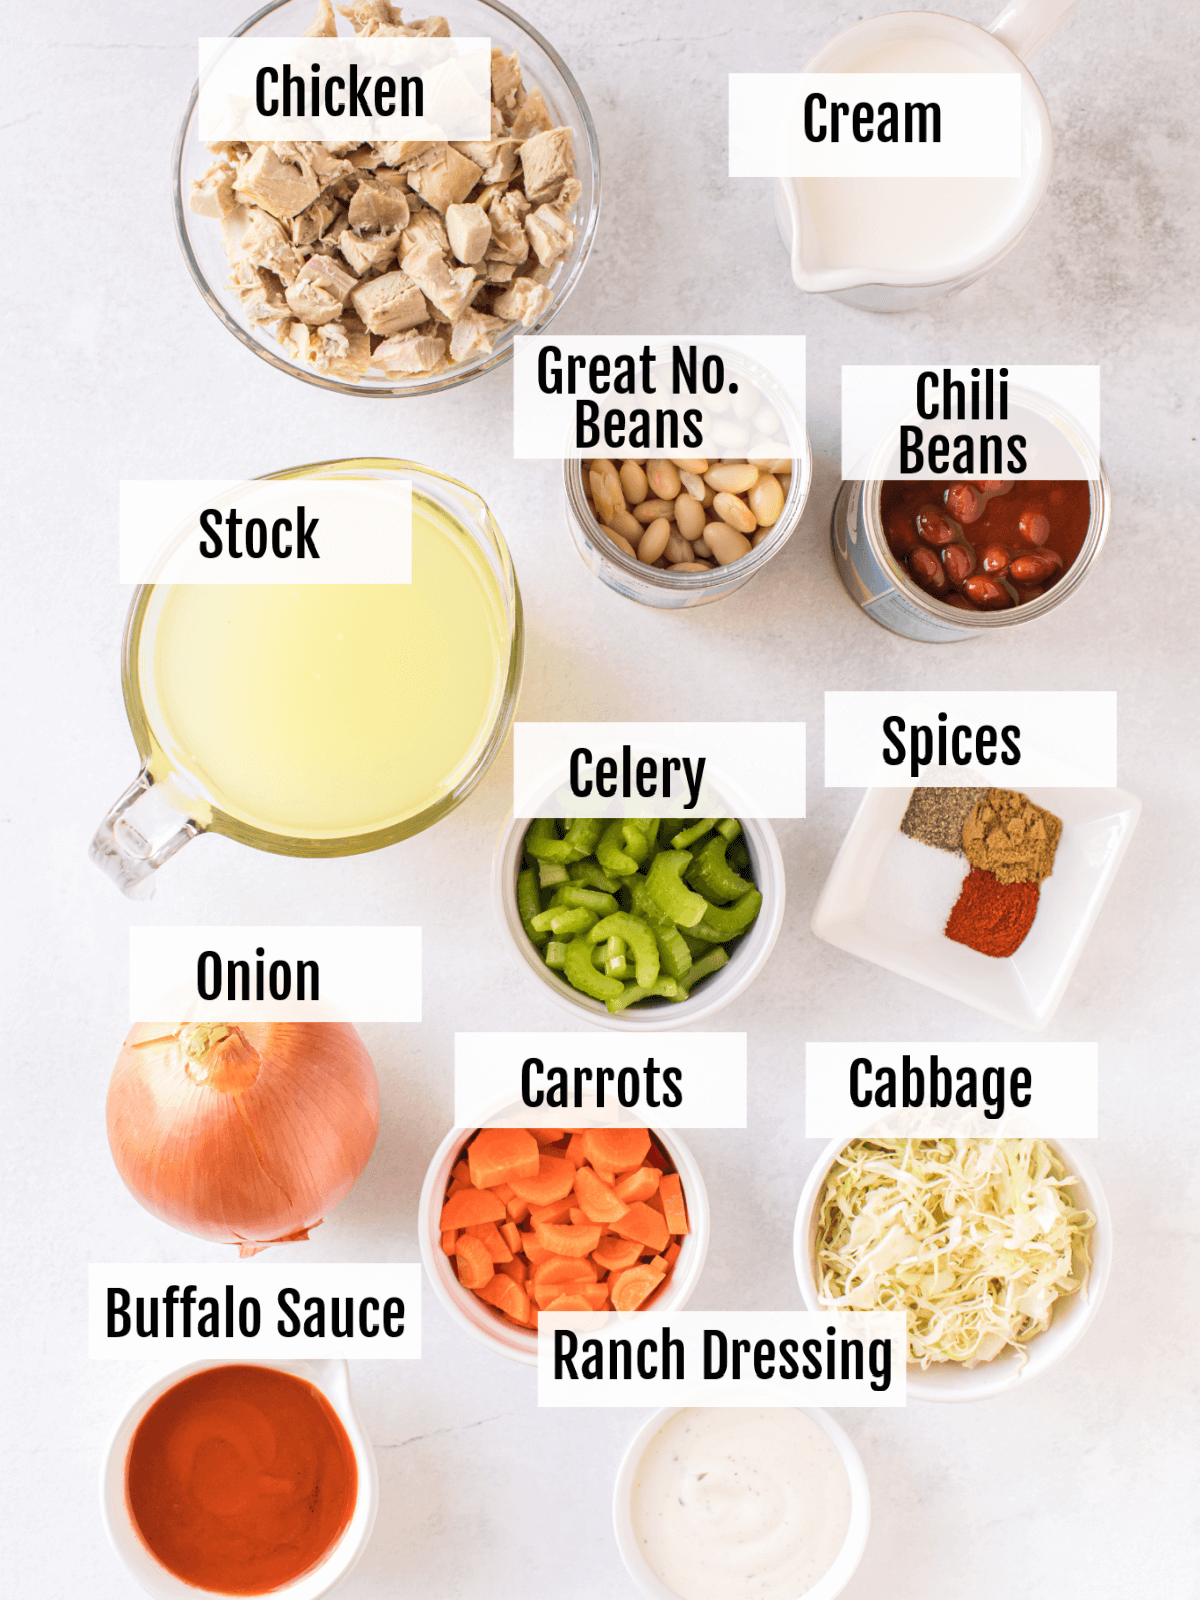 Ingredients for the Buffalo Chicken Soup.